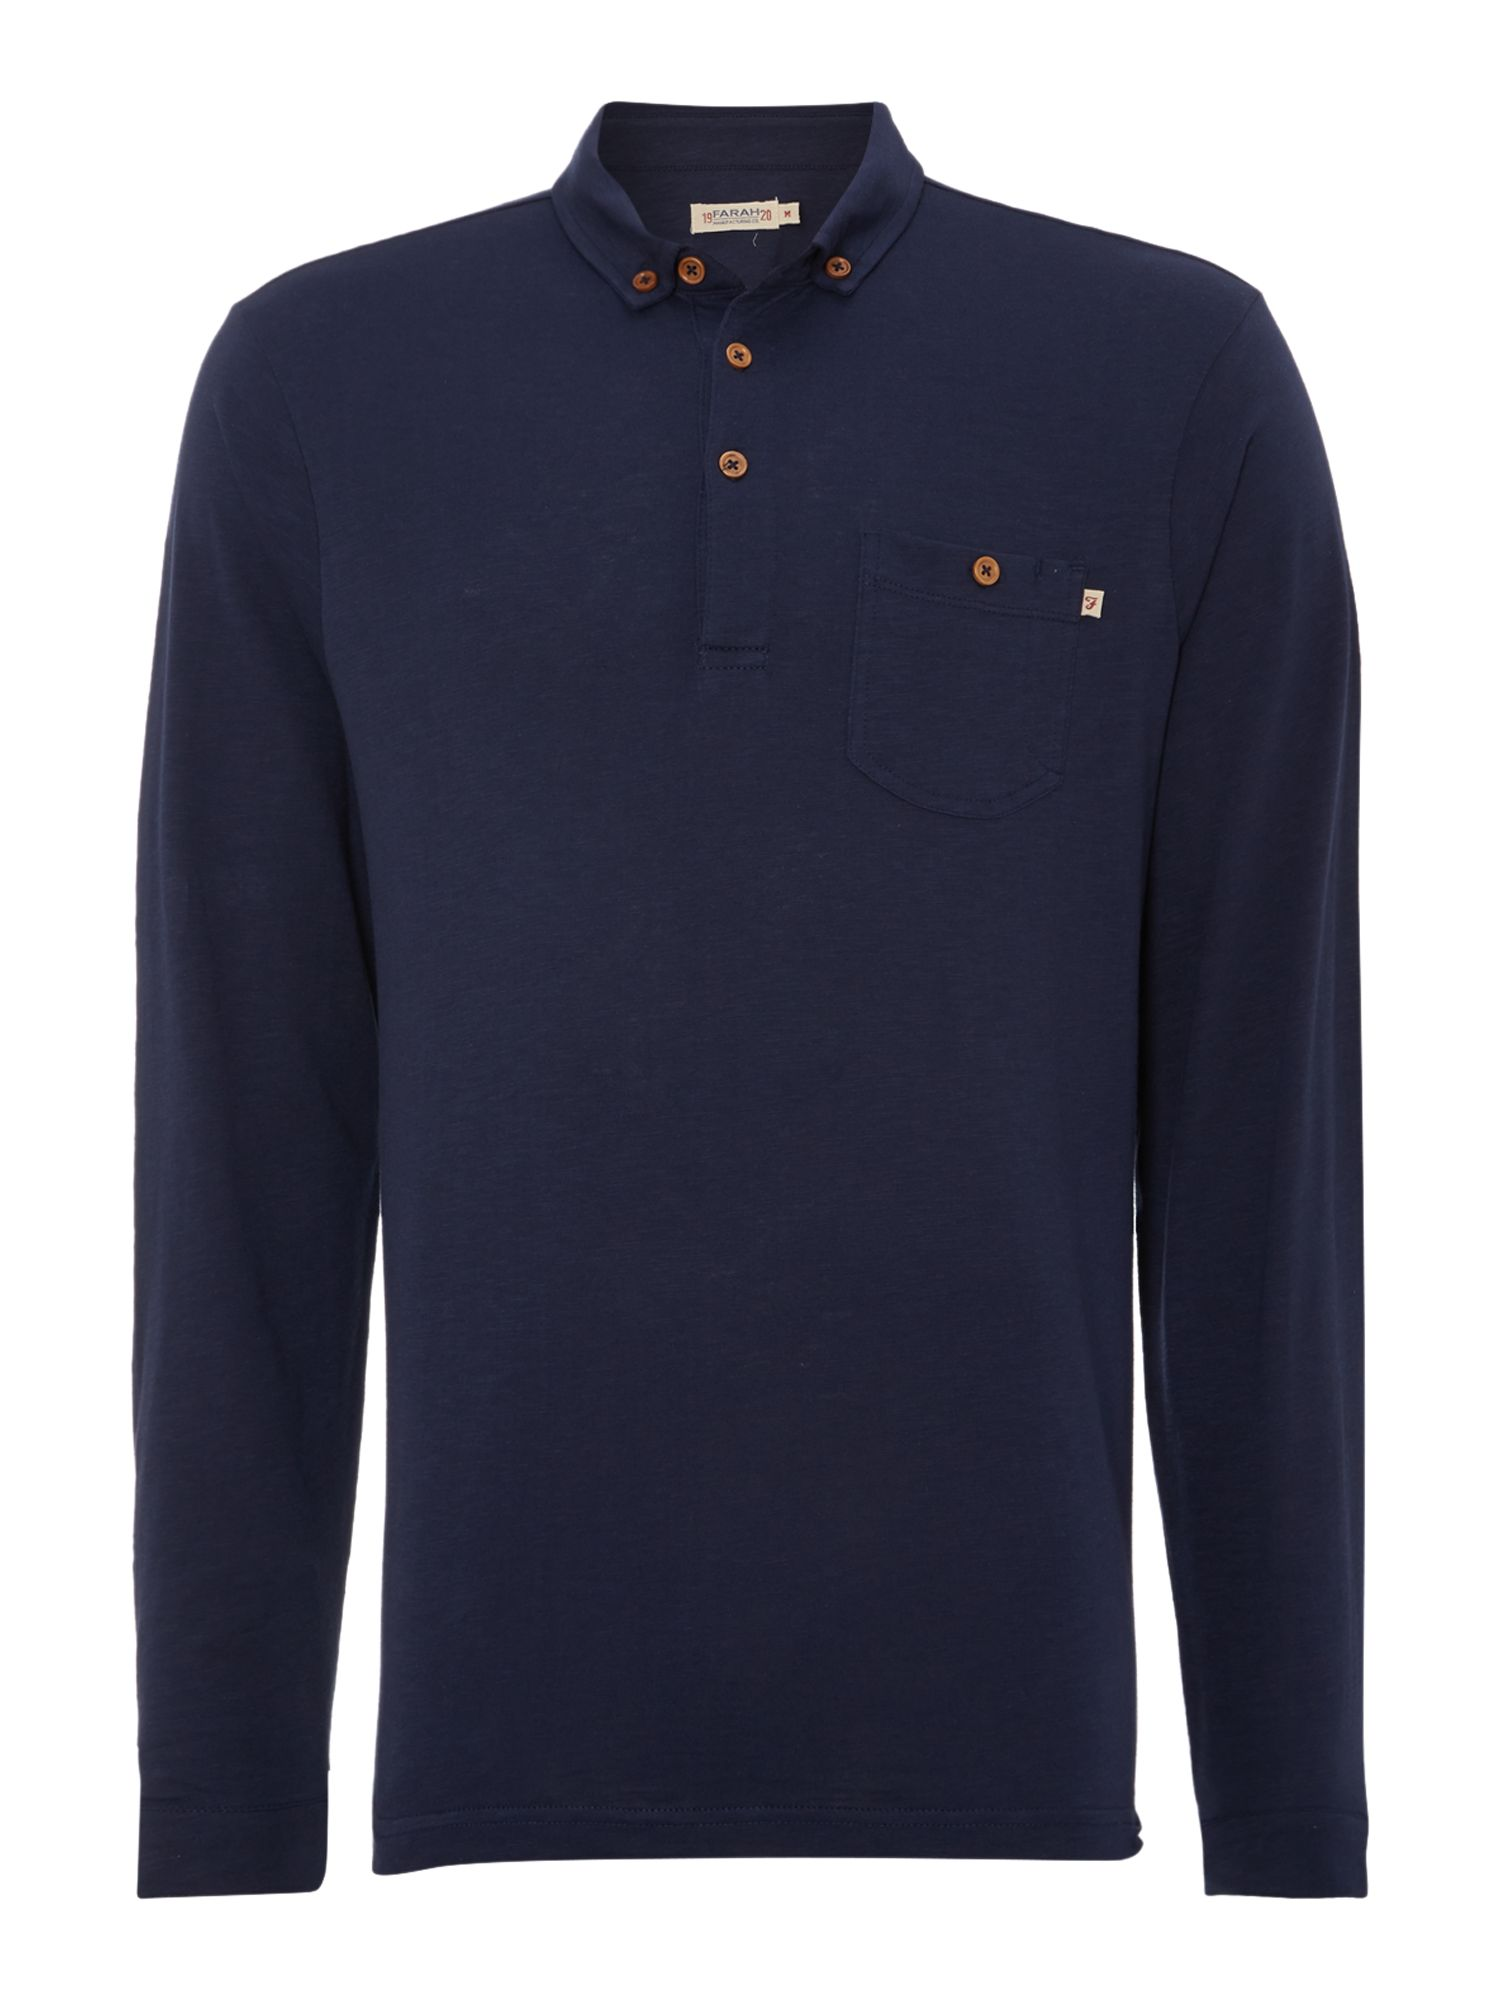 Stapleford long sleeve polo shirt